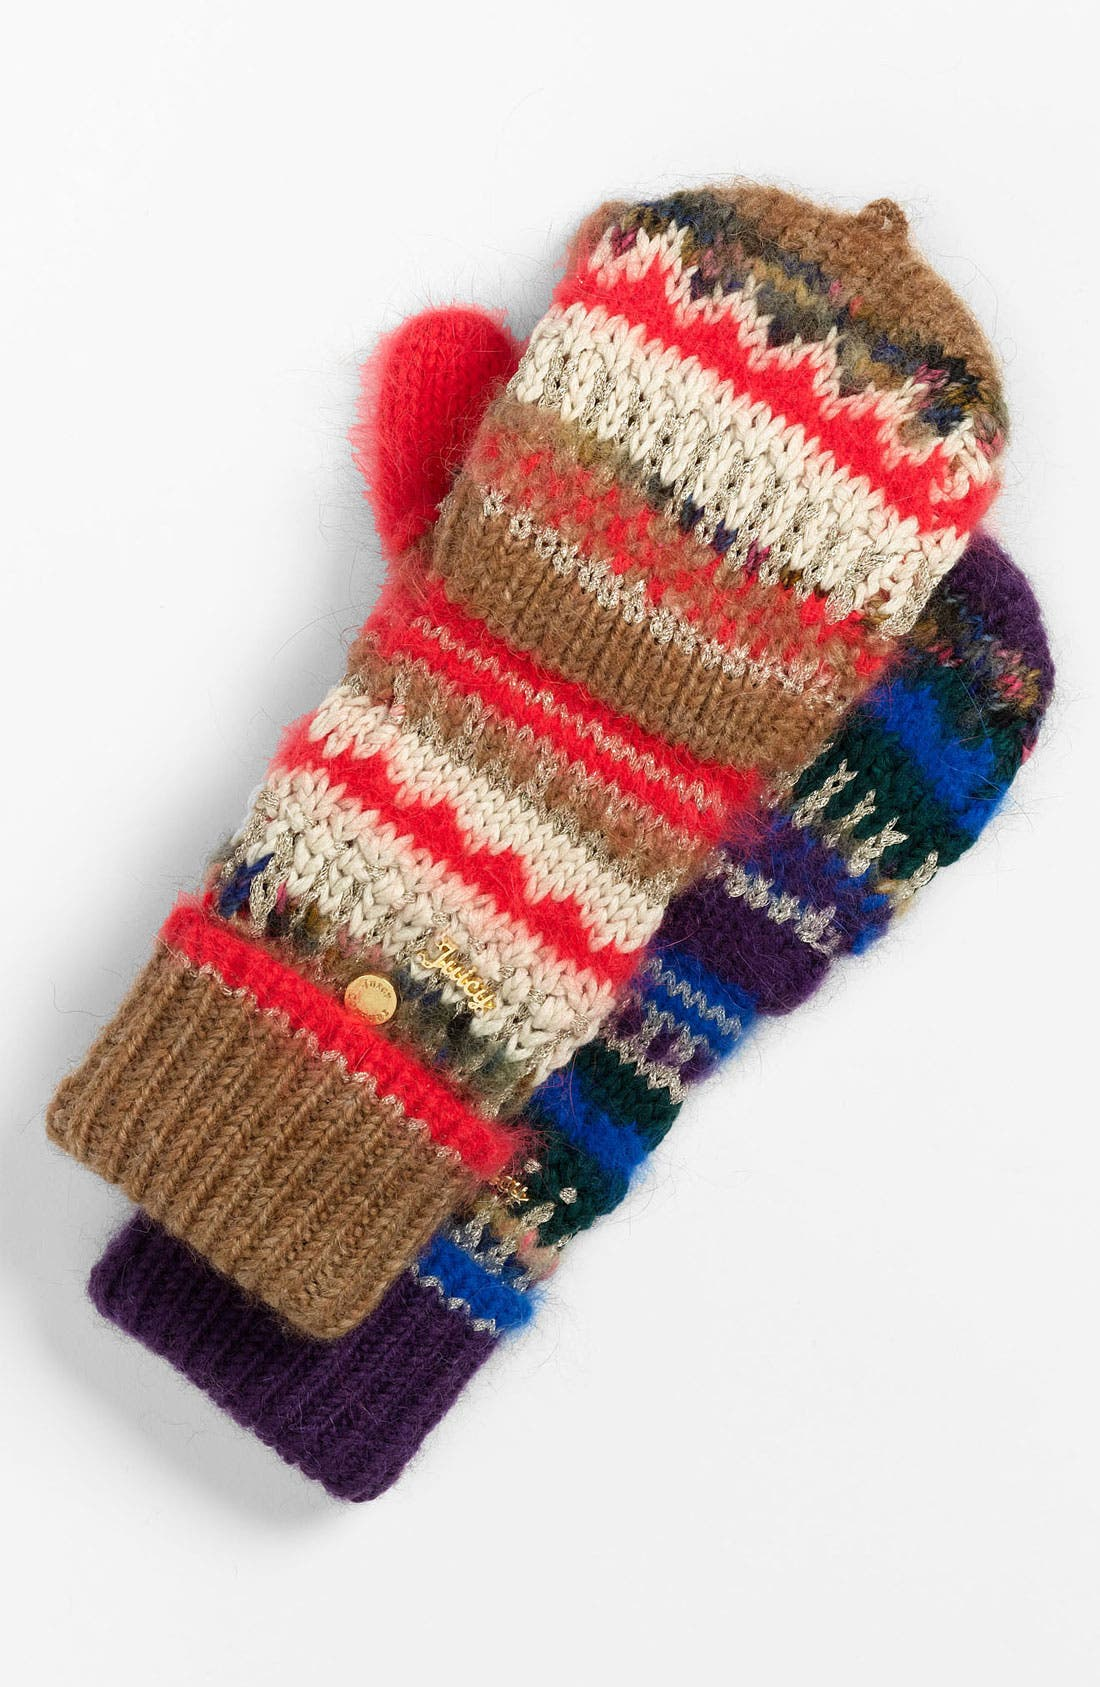 Alternate Image 1 Selected - Juicy Couture 'Pop Top' Mixed Yarn Mittens